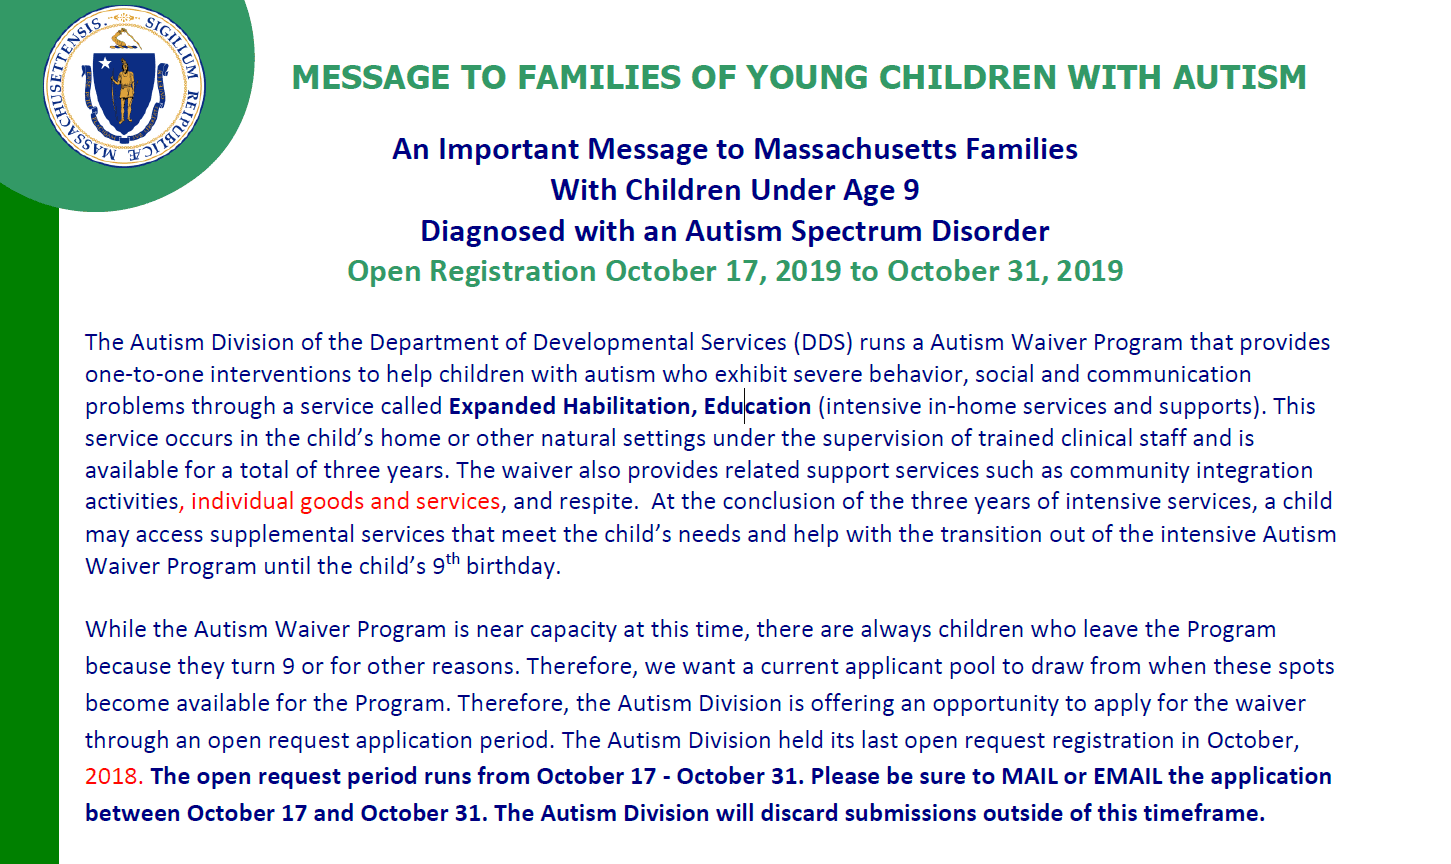 Family Notice for the Autism Waiver Program 2019